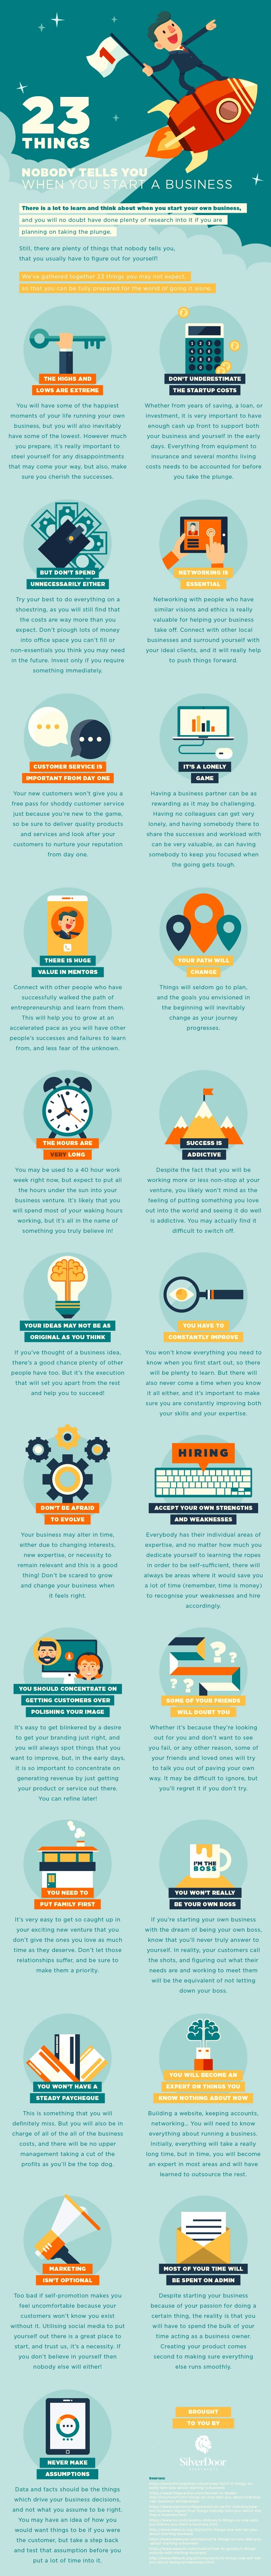 23 Things Nobody Tells You When You Start A Business - #Infographic